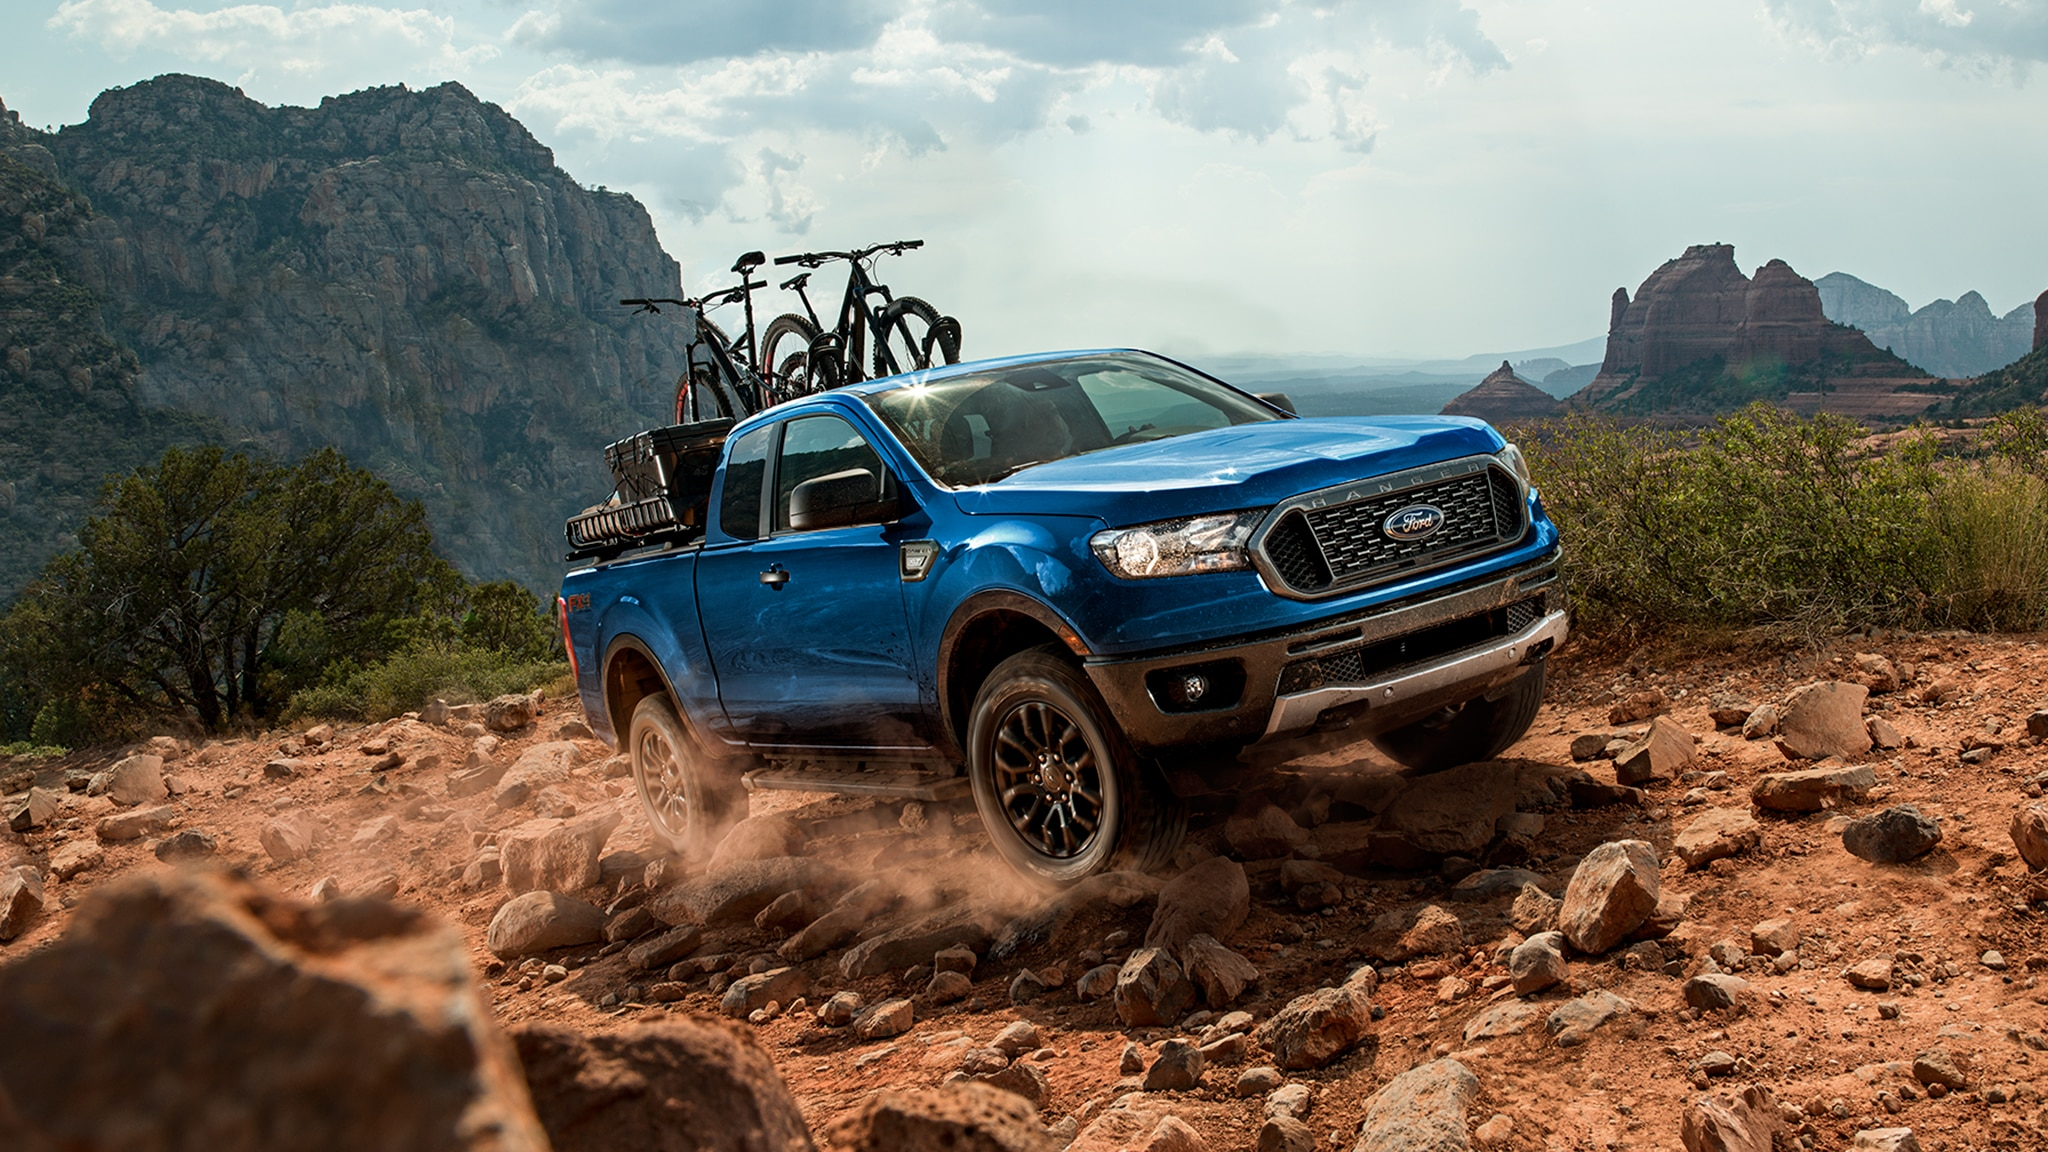 2019 Ford Ranger Pickup Mpg Announced Claims Best In Class For Gas